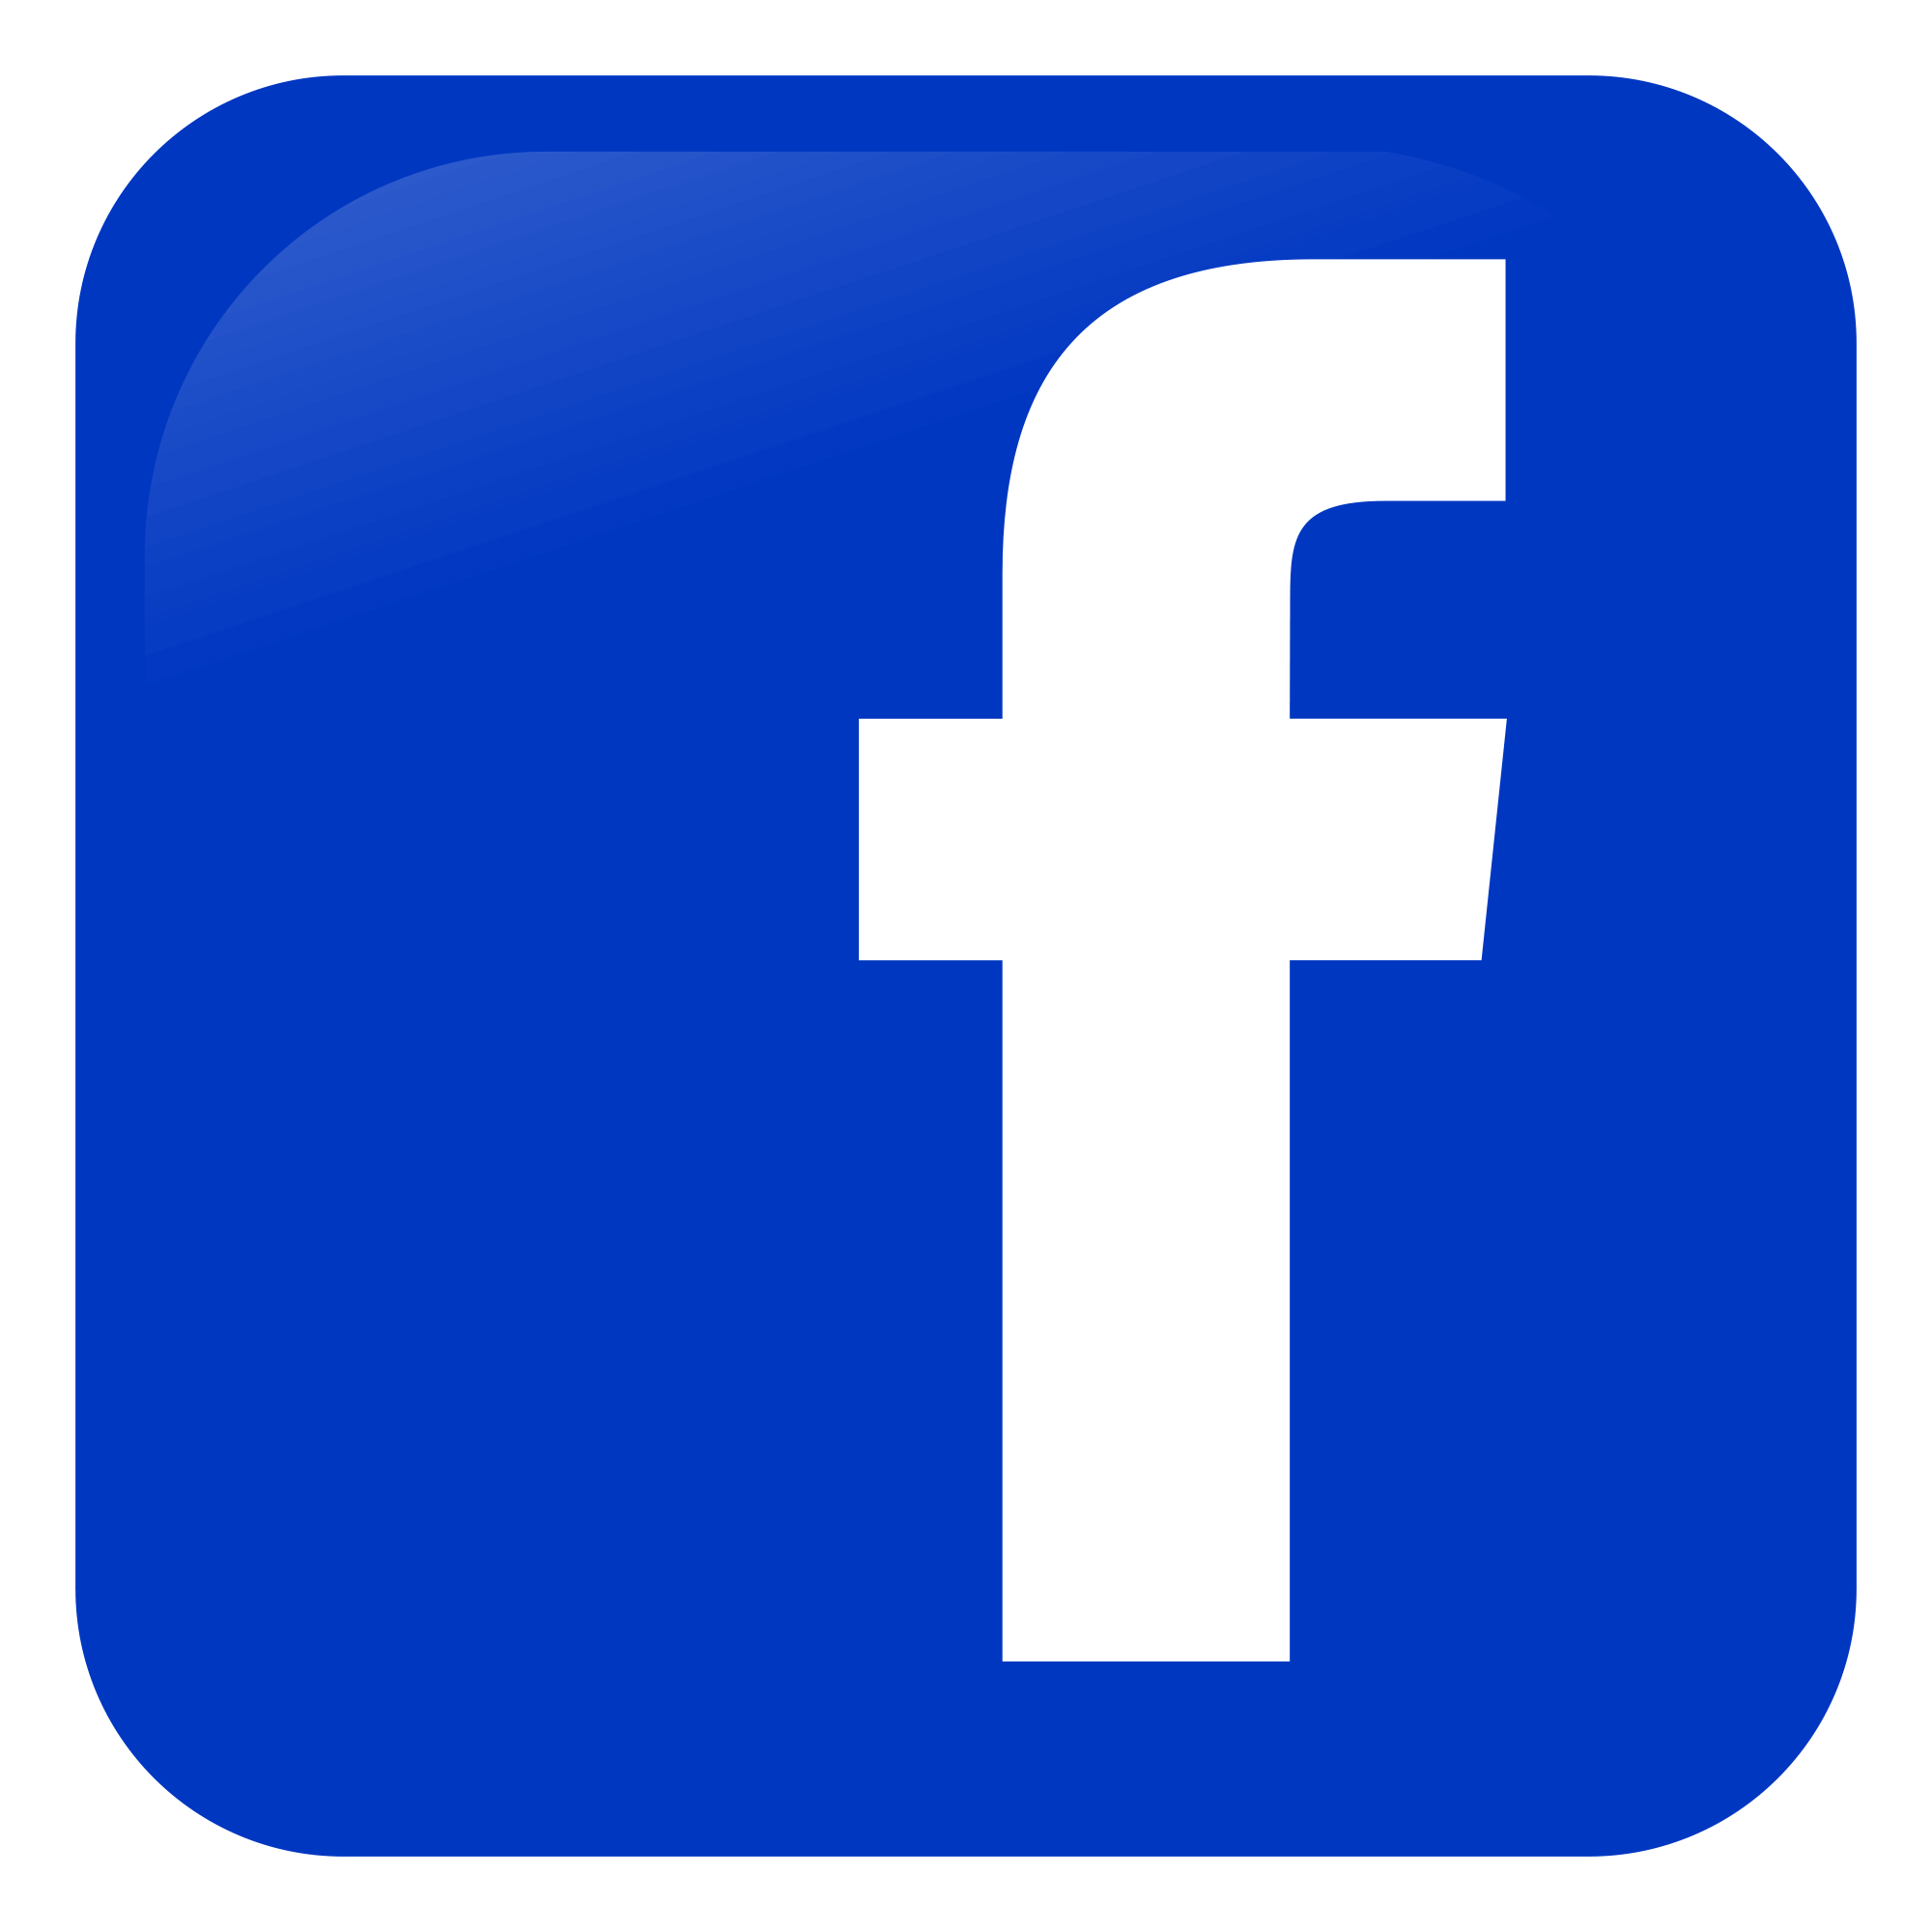 2000x2000 Best Facebook Logo Icons, Gif, Transparent Png Images, Cliparts